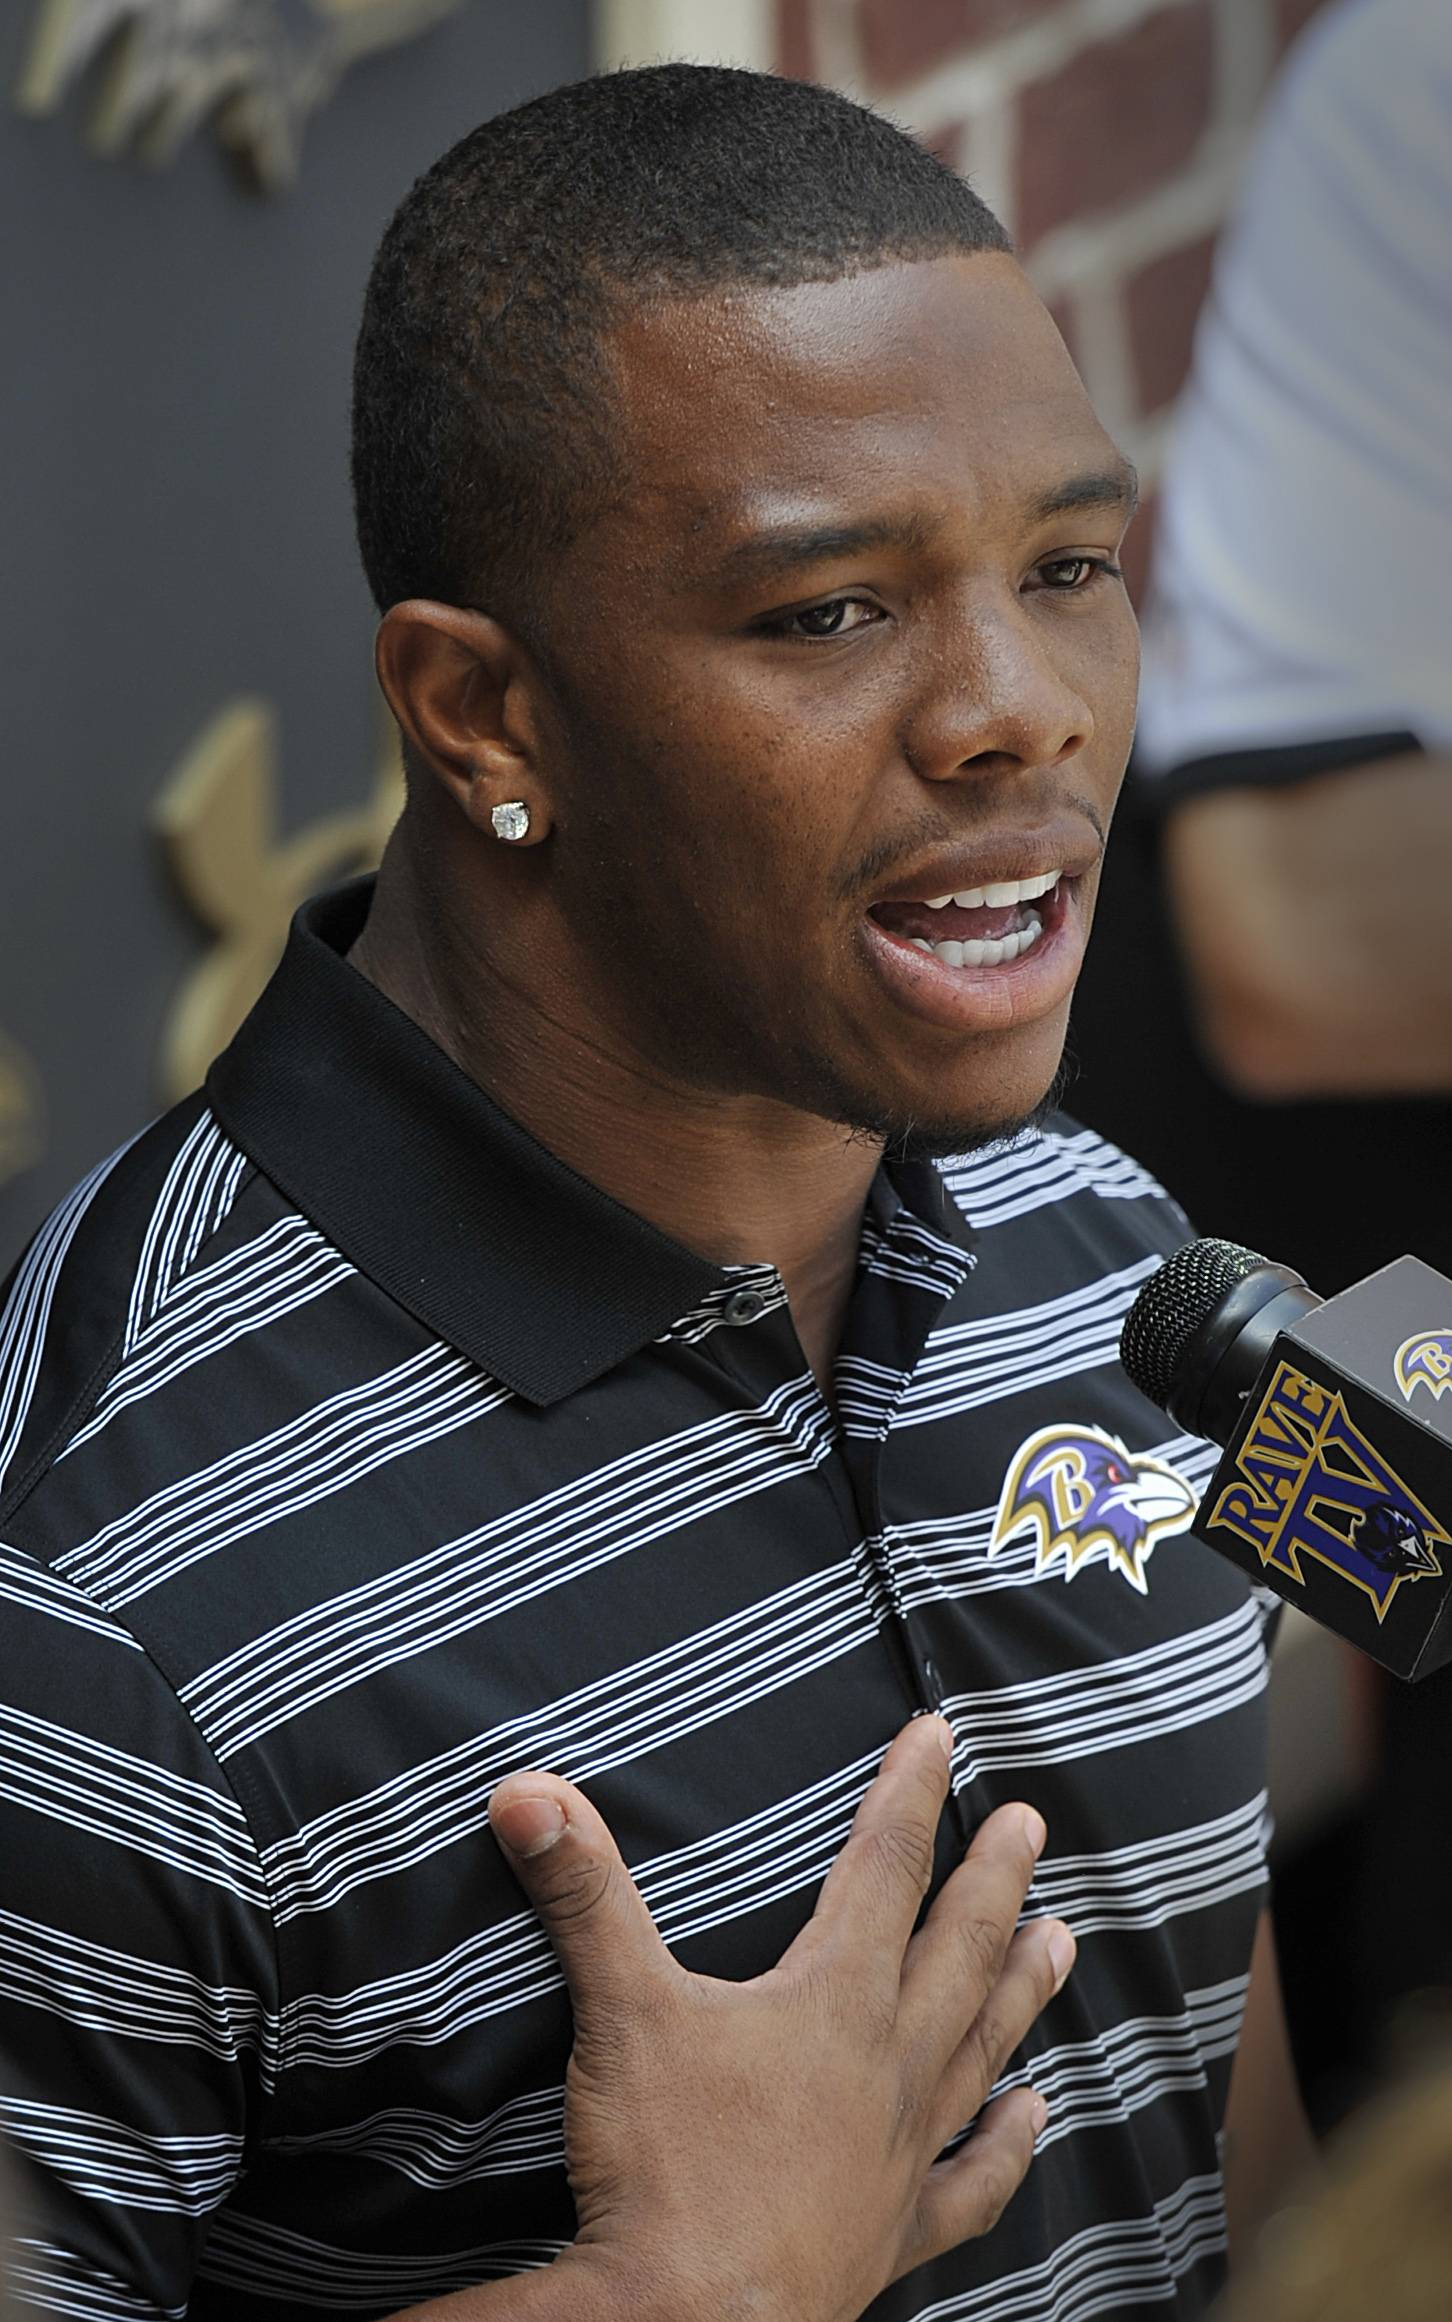 Baltimore Ravens running back Ray Rice answers question during a news conference after NFL football training camp, Thursday, July 31, 2014, in Owings Mills, Md.